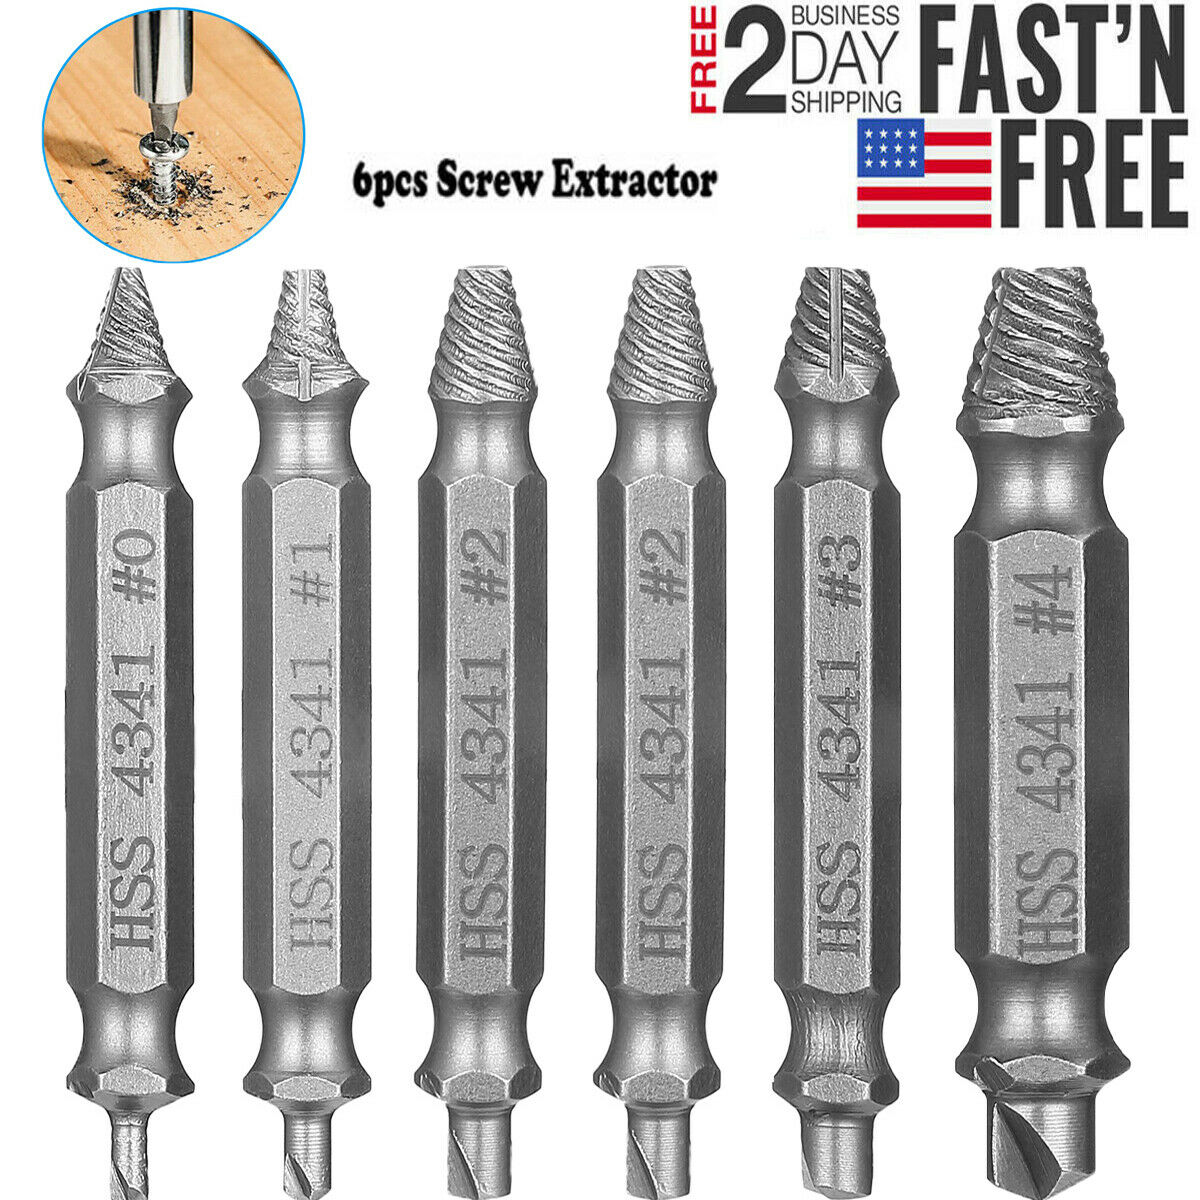 6Pcs Damaged Screw Extractor Speed Out Drill Bits Tool Set B